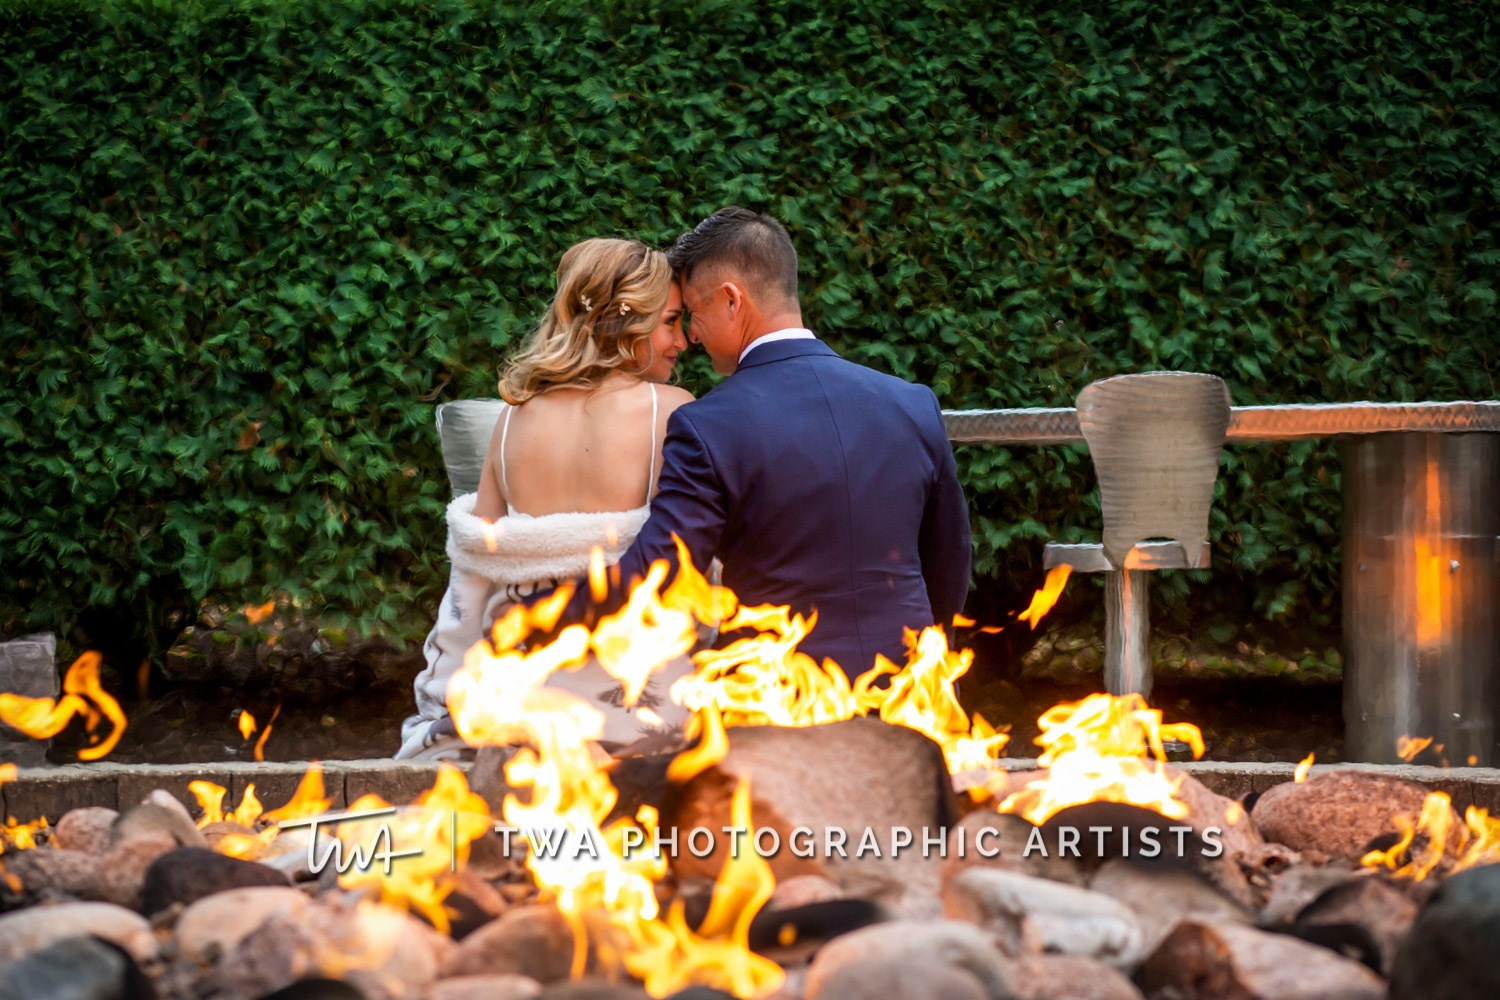 Chicago-Wedding-Photographer-TWA-Photographic-Artists-CD-and-Me_Zweizig_Alfred_MJ_TL-0992